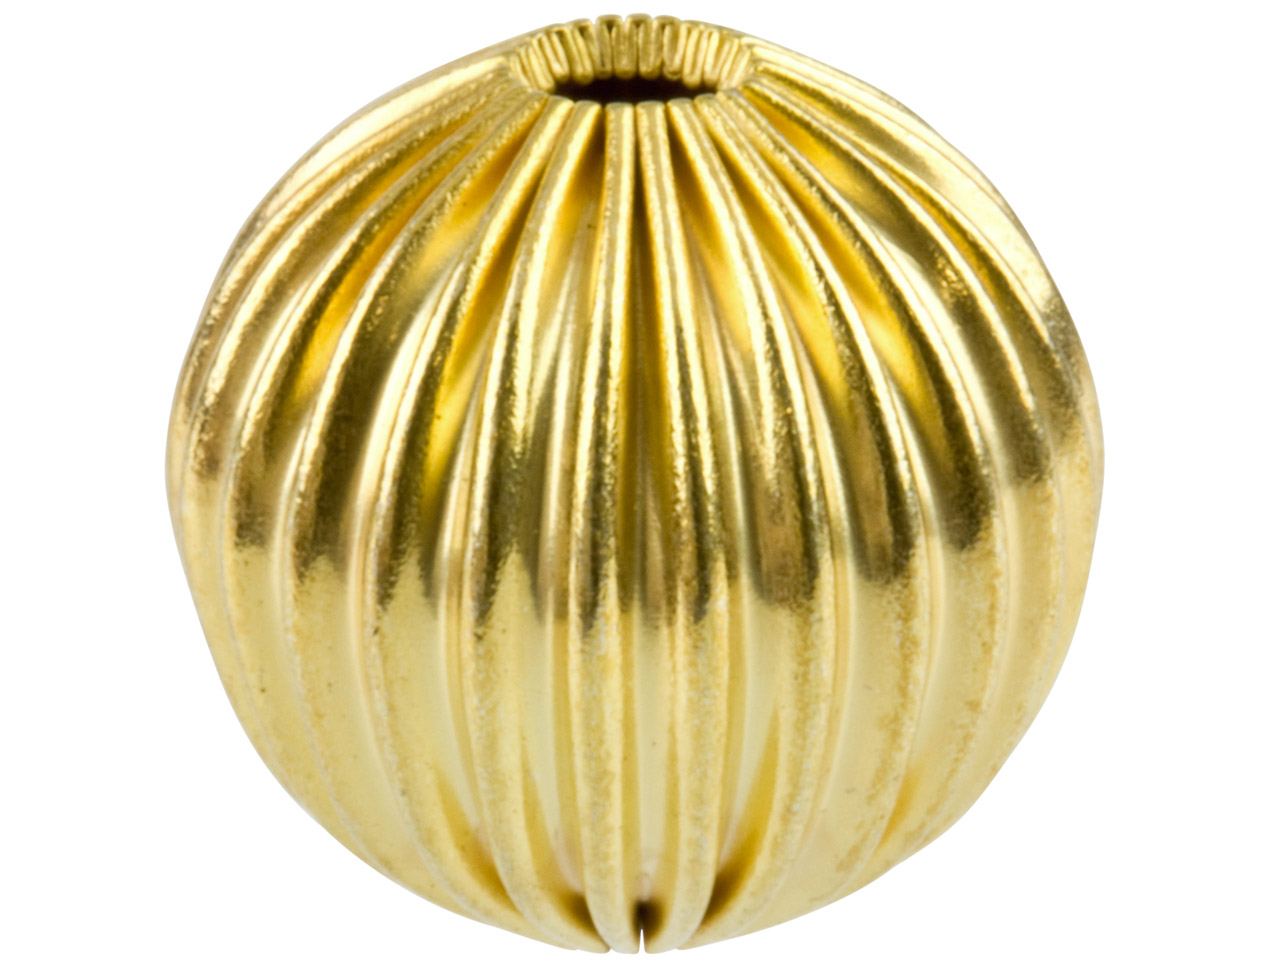 Gold Plated Corrugated Round Beads 12mm, 2 Hole, Pack of 6